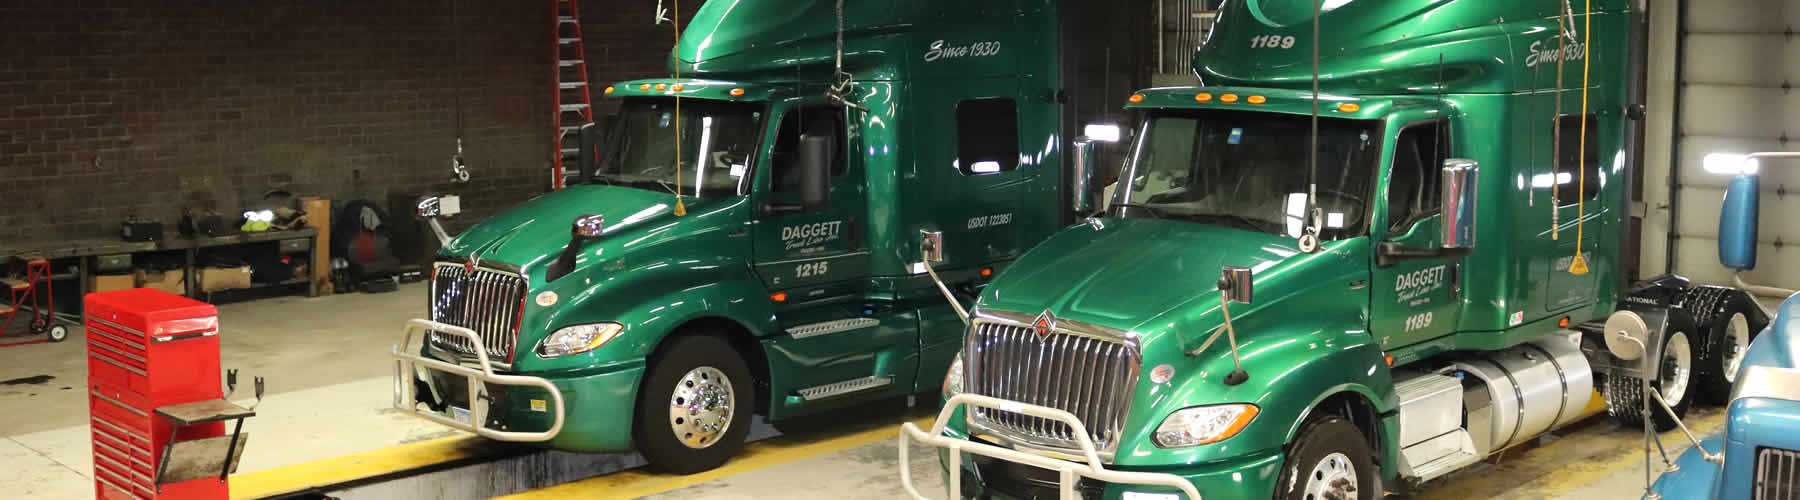 Information about Daggett Truck Line of Frazee, Minnesota and Clearwater, Minnesota.